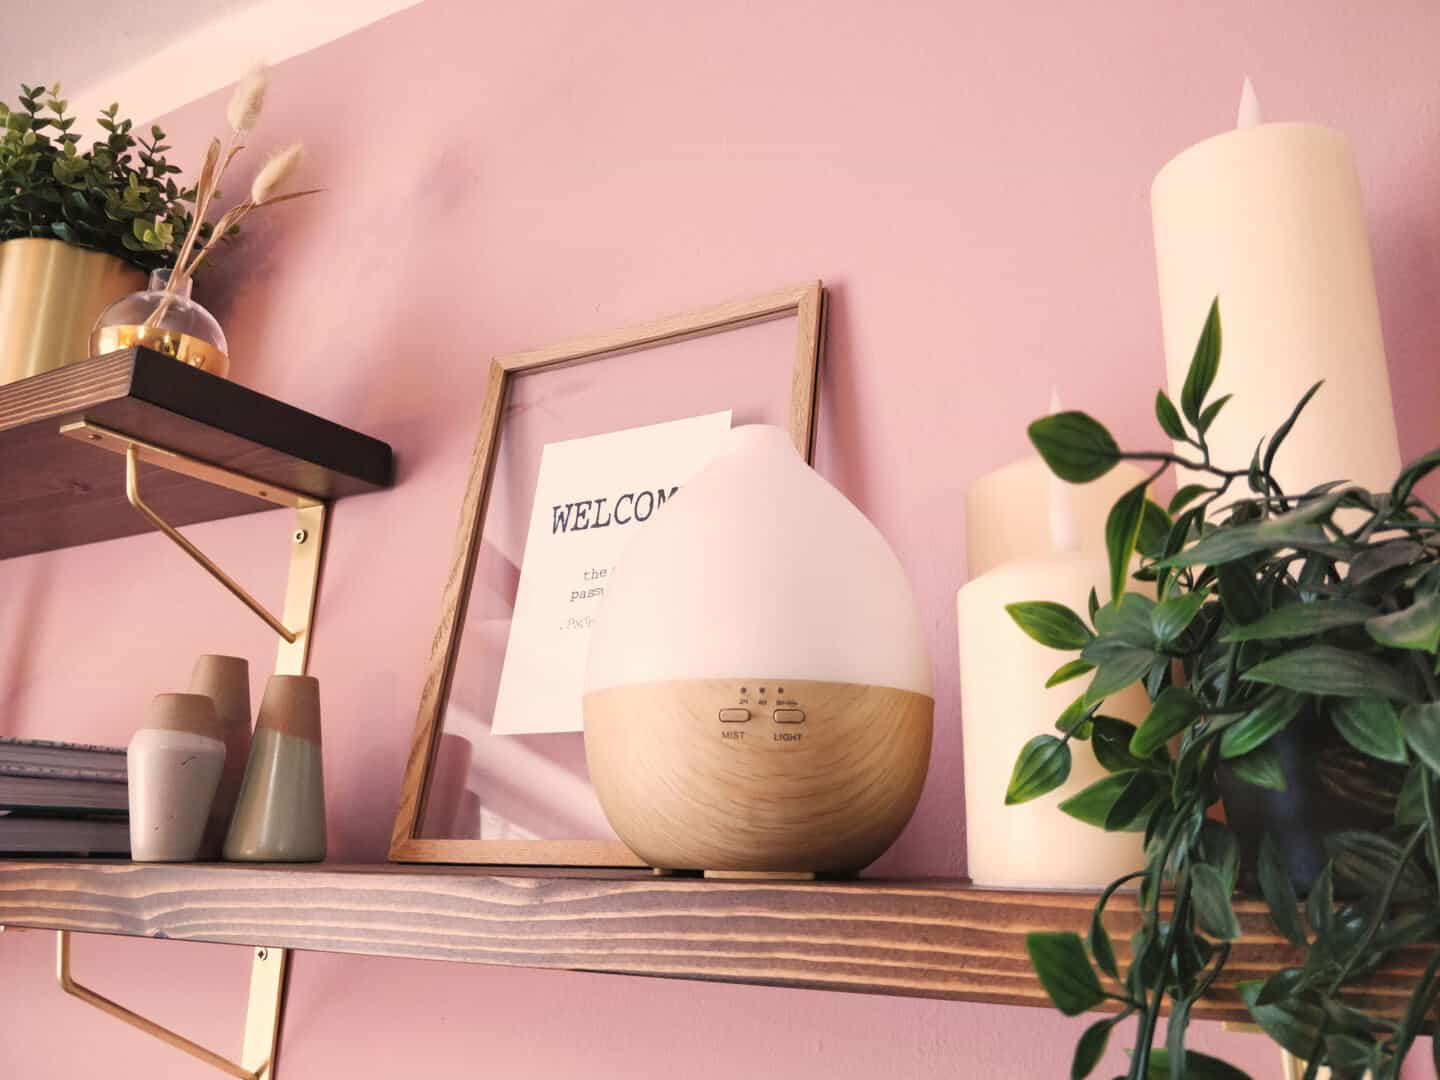 Smellacloud aroma diffuser on a shelf with candles, plants and accessories